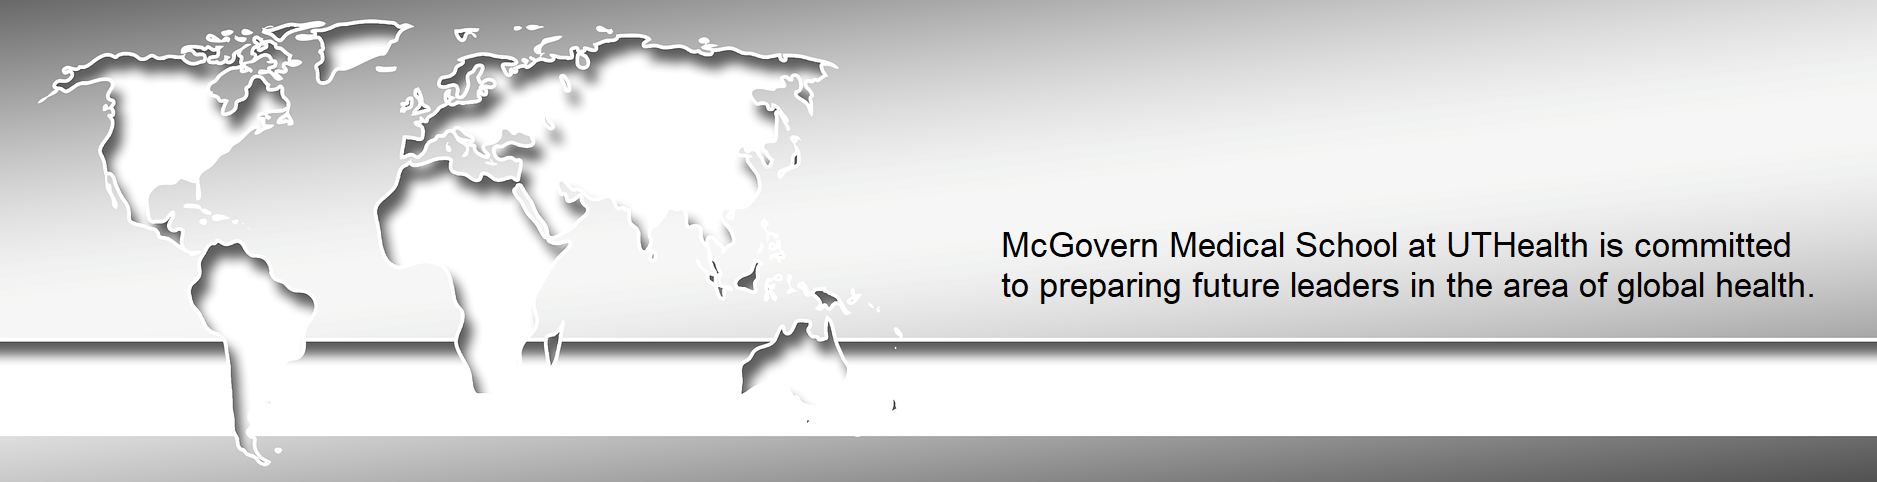 McGovern med is committed to preparing future leaders in the area of global health